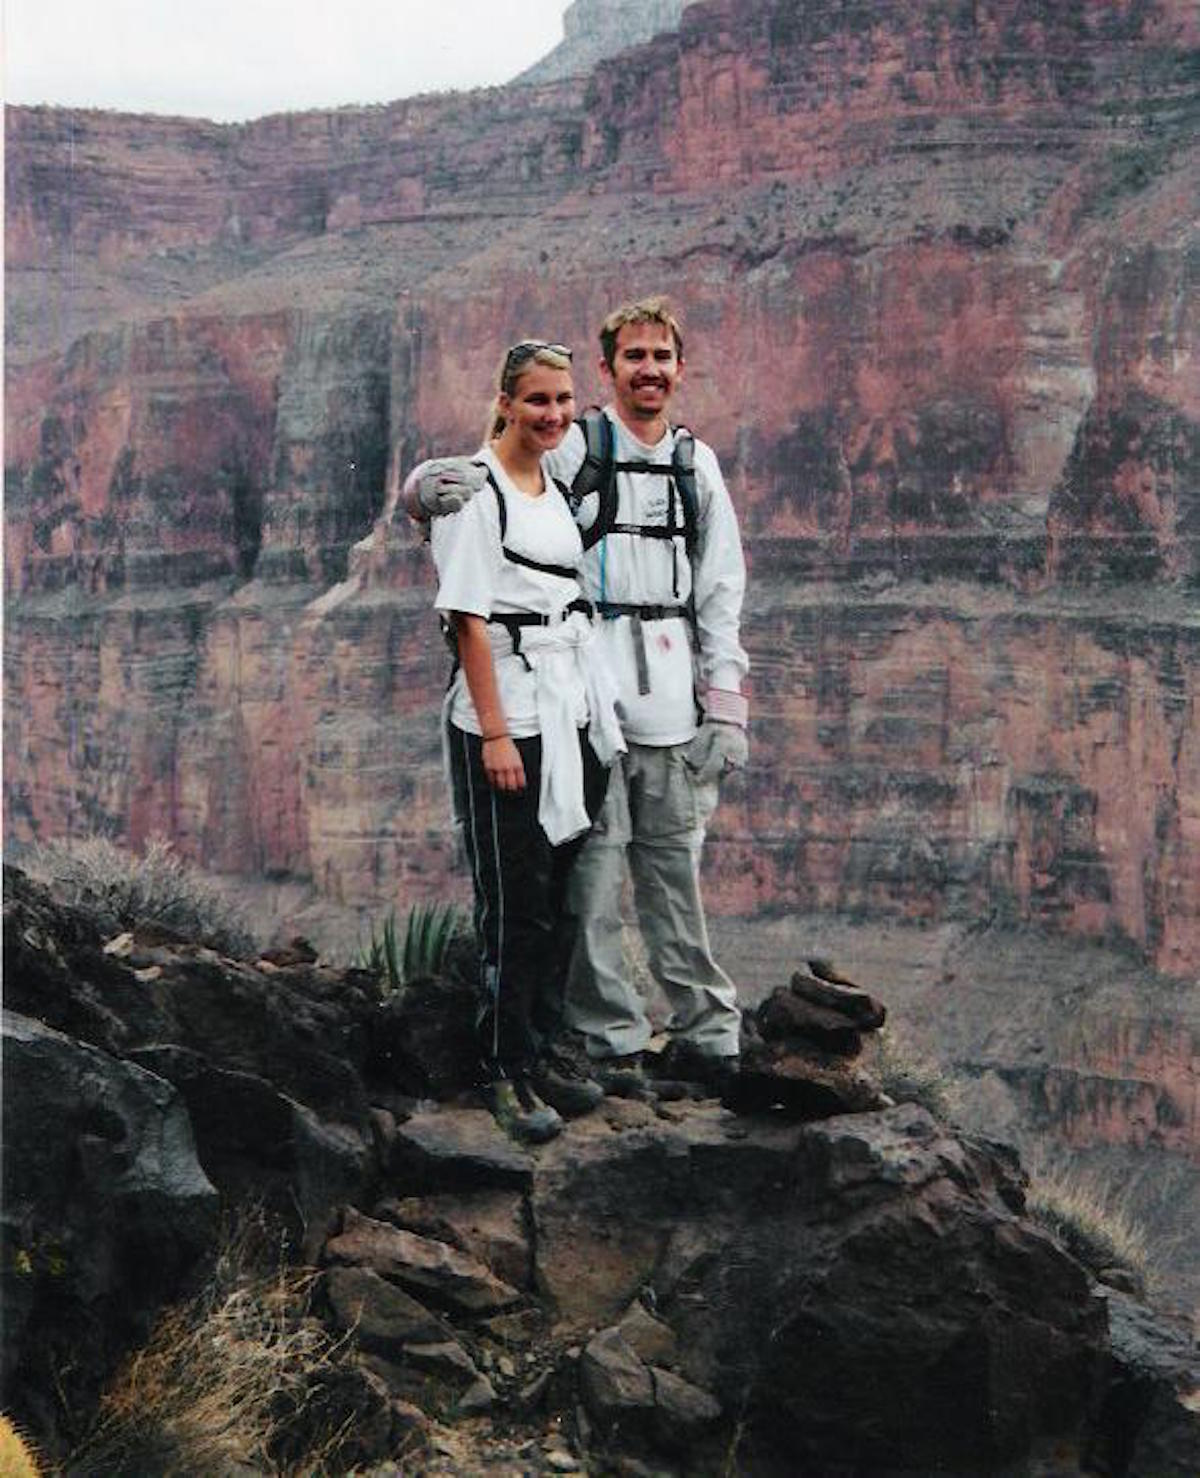 This is Justin and I on our first backpacking trip together in 2002. I think my favorite part of this picture is Justin's gardening gloves.